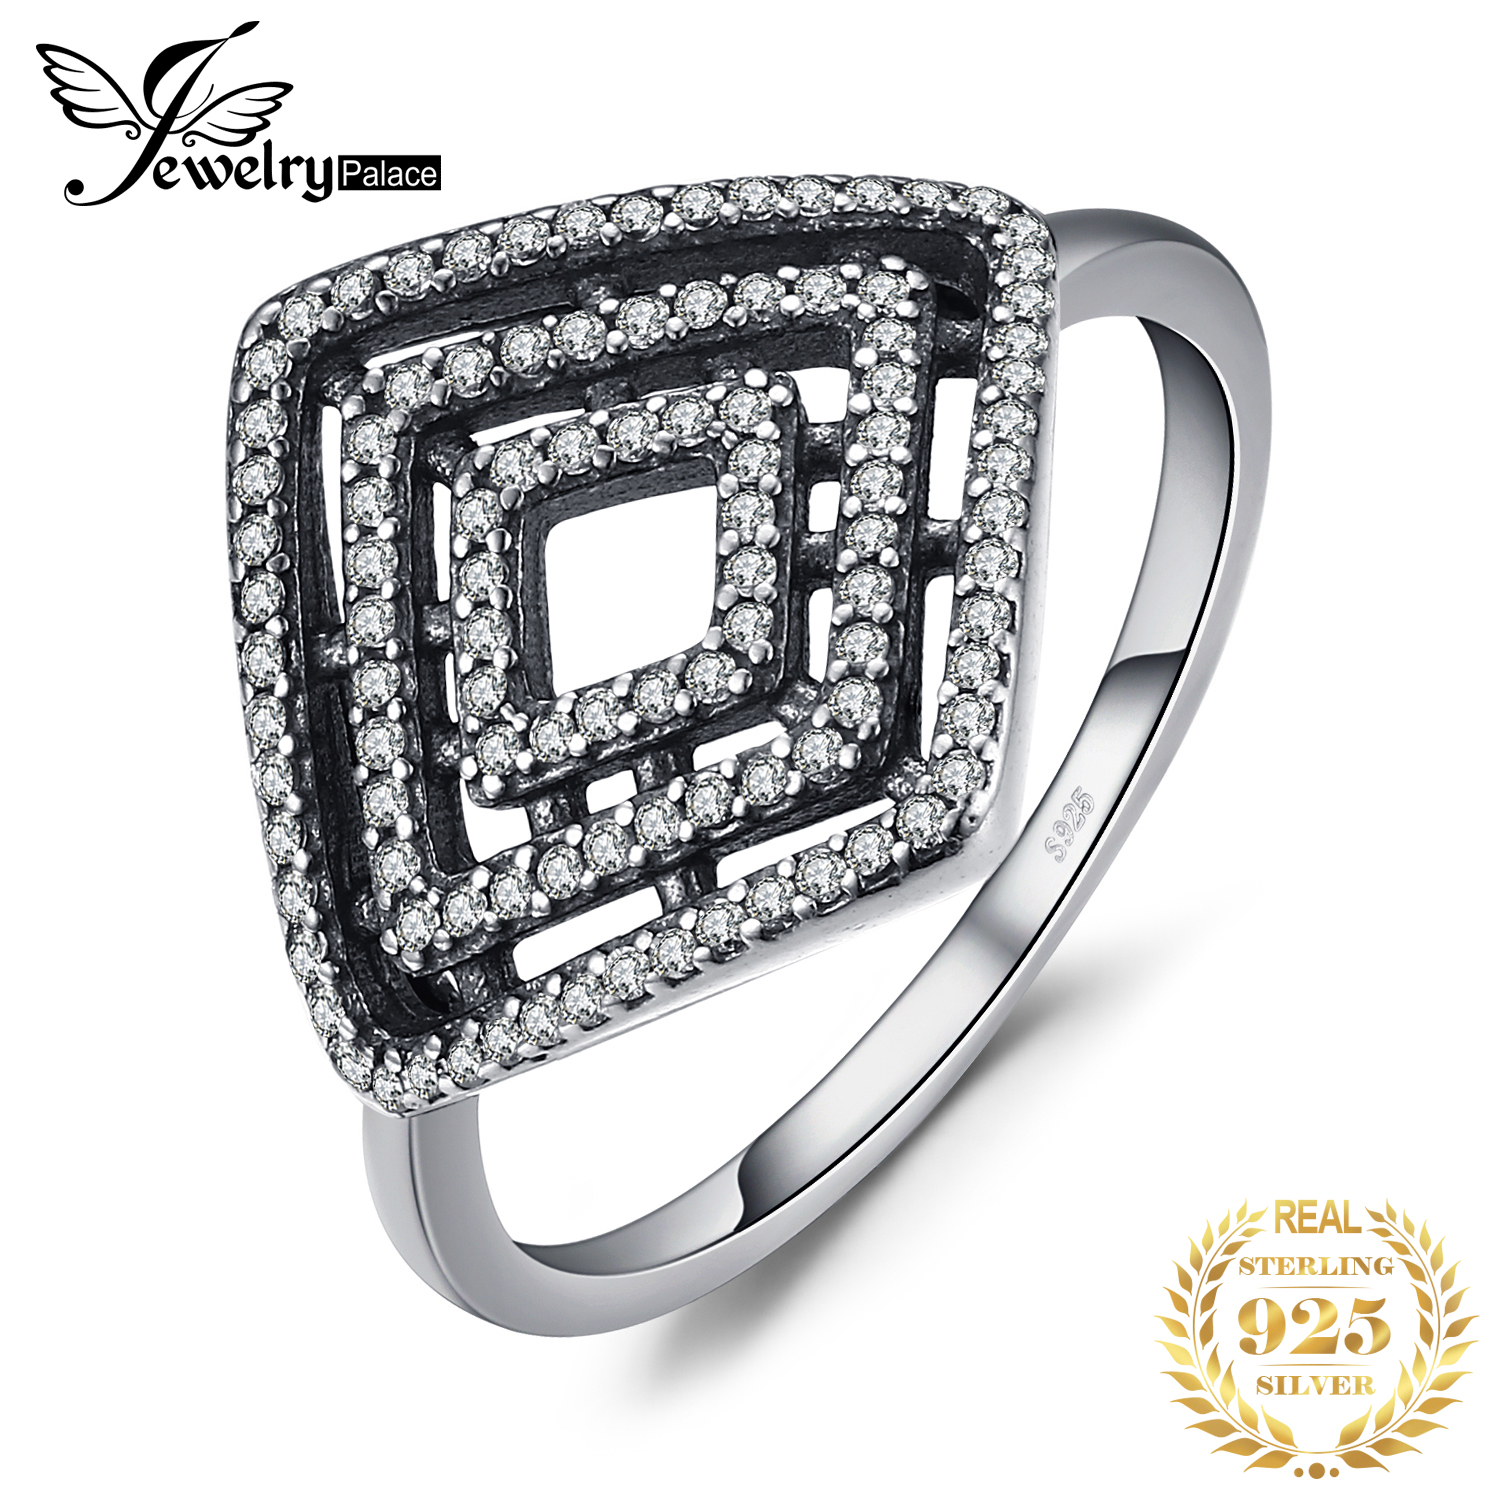 Jewelrypalace Glitter Flora Silver Beautiful Ring 925 Sterling Silver Gifts For Her Anniversary Fashion Jewelry New Innrech Market.com